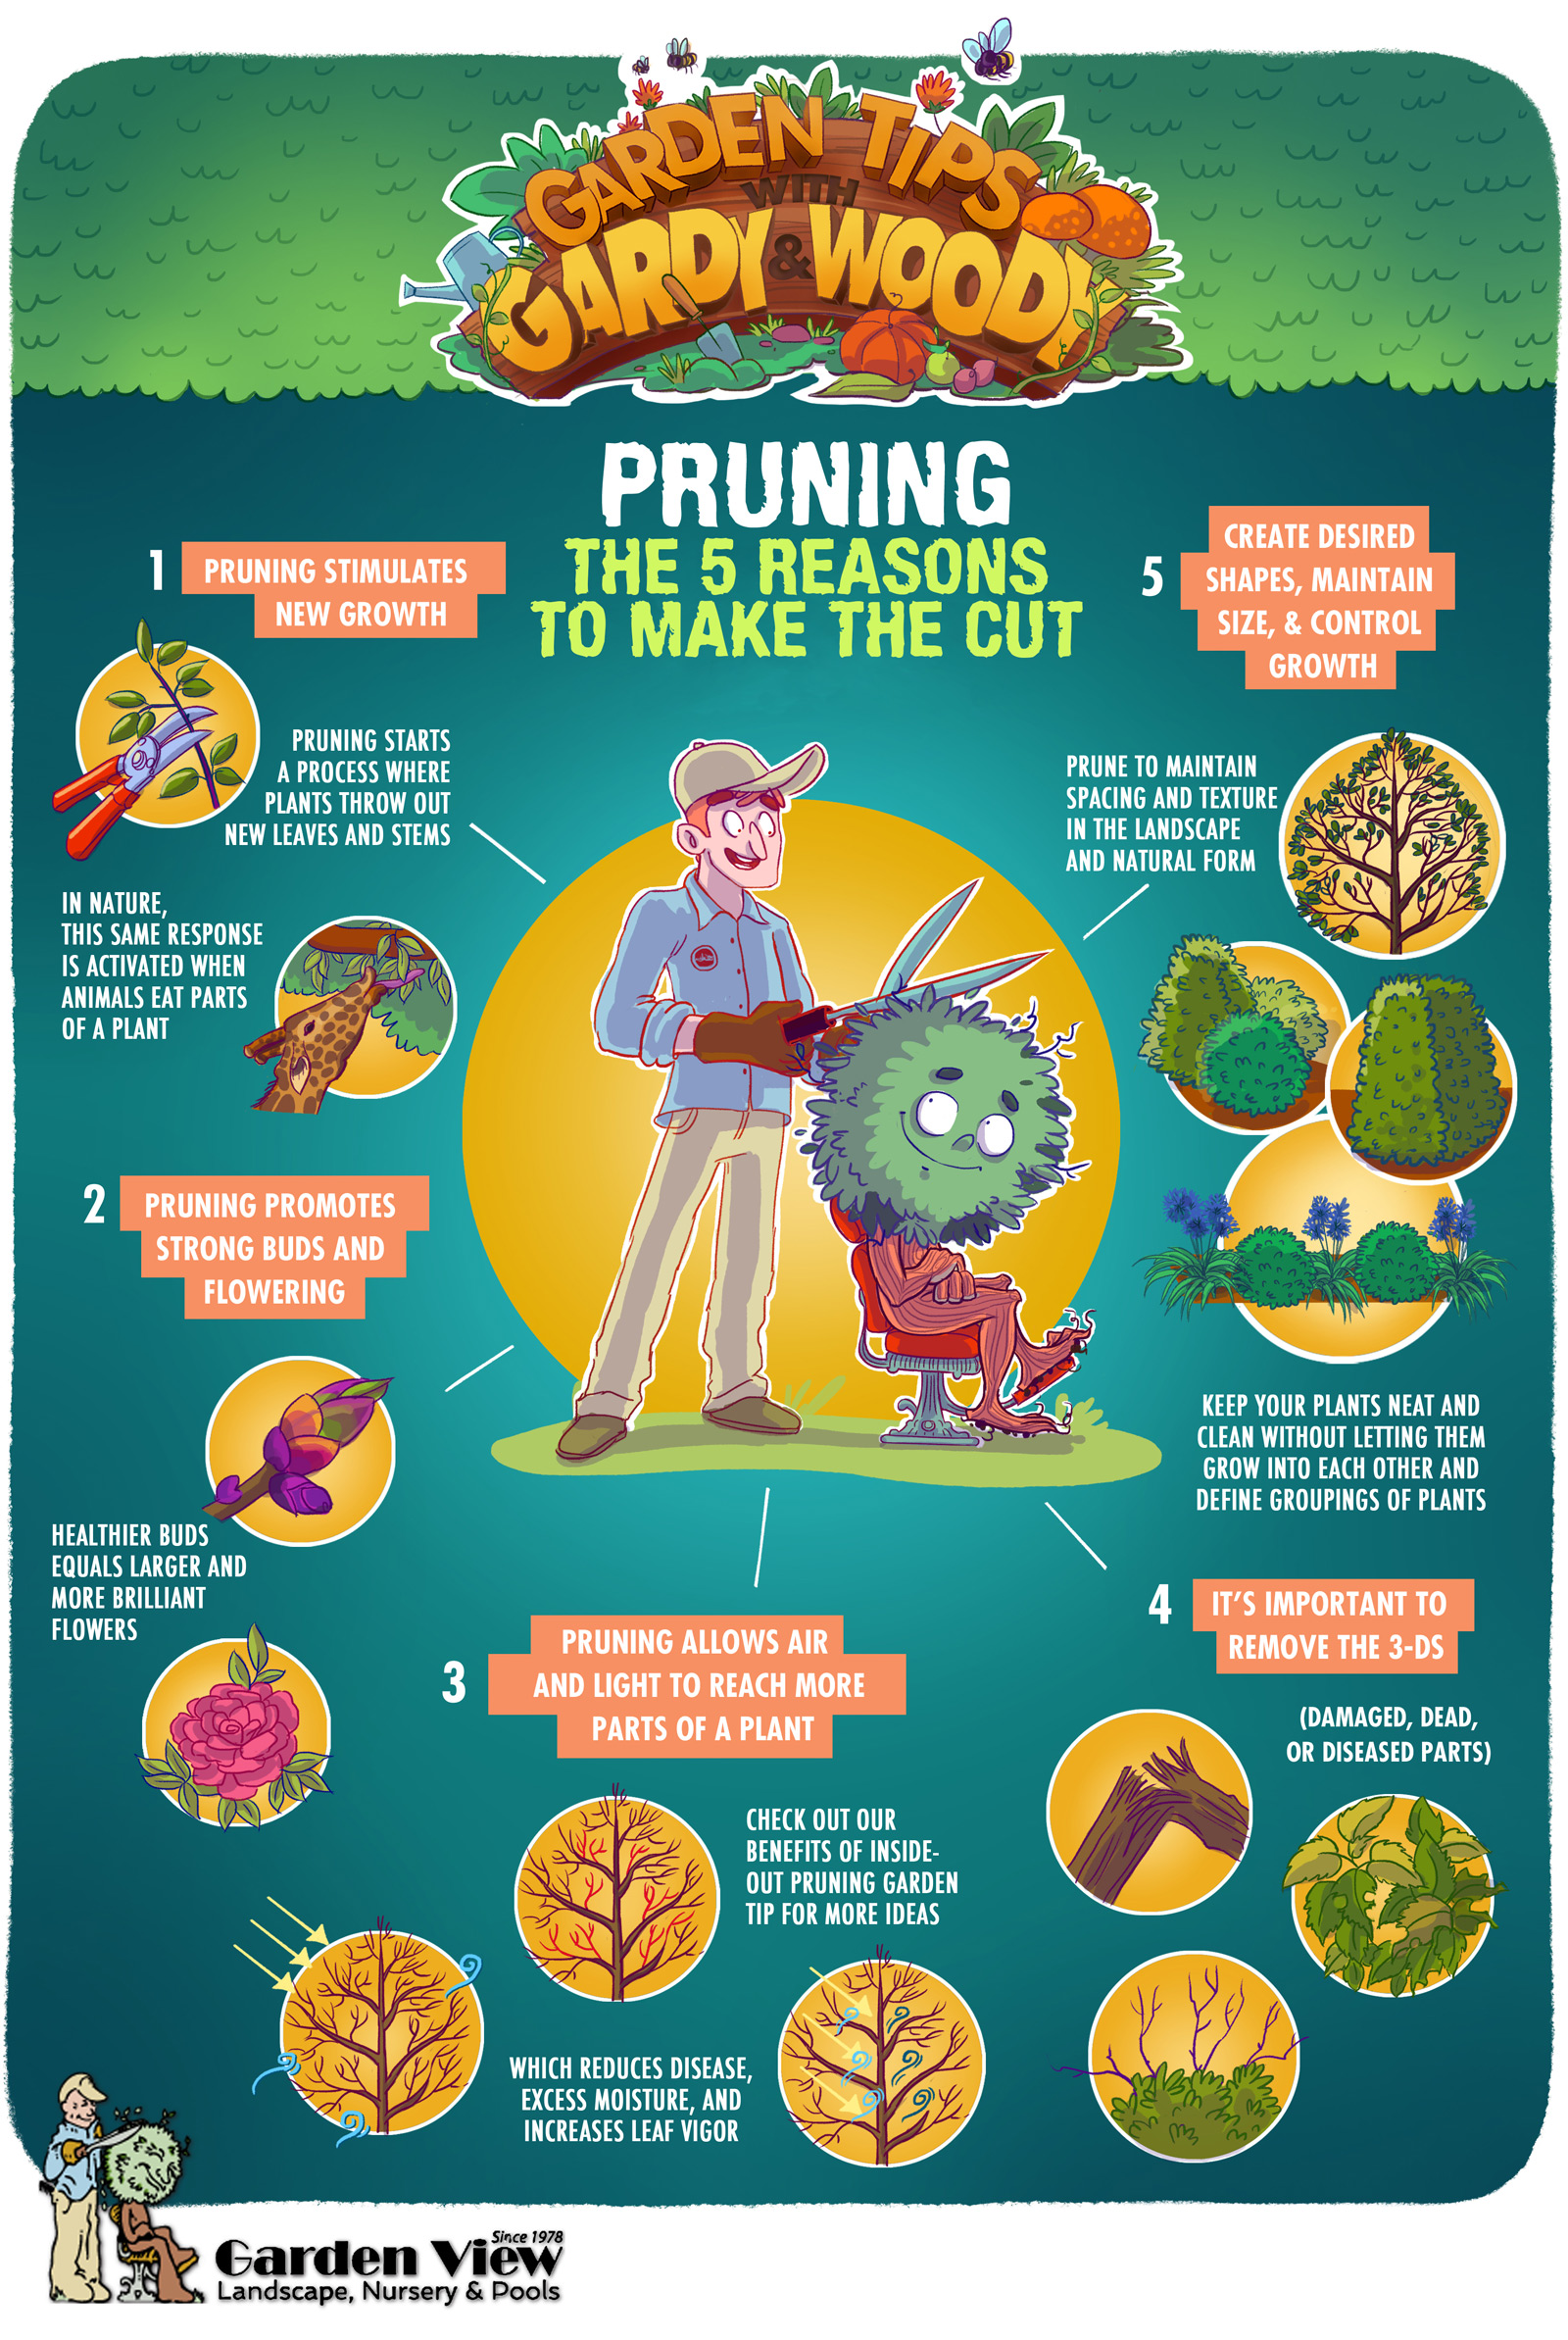 5 reasons to prune trees and hedges infographic